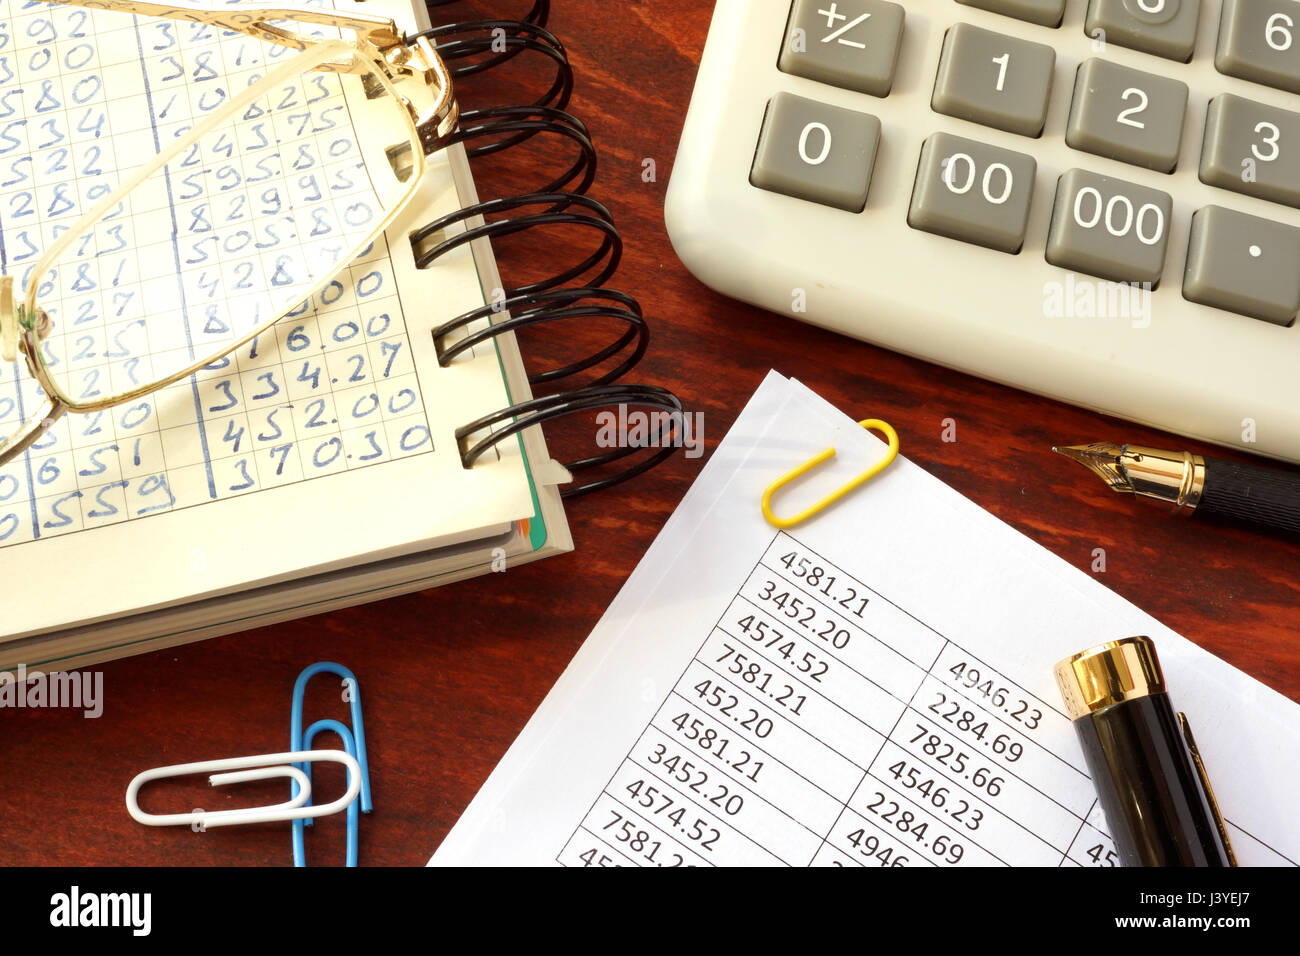 Accountability concept. Ledger with financial data and calculator. - Stock Image